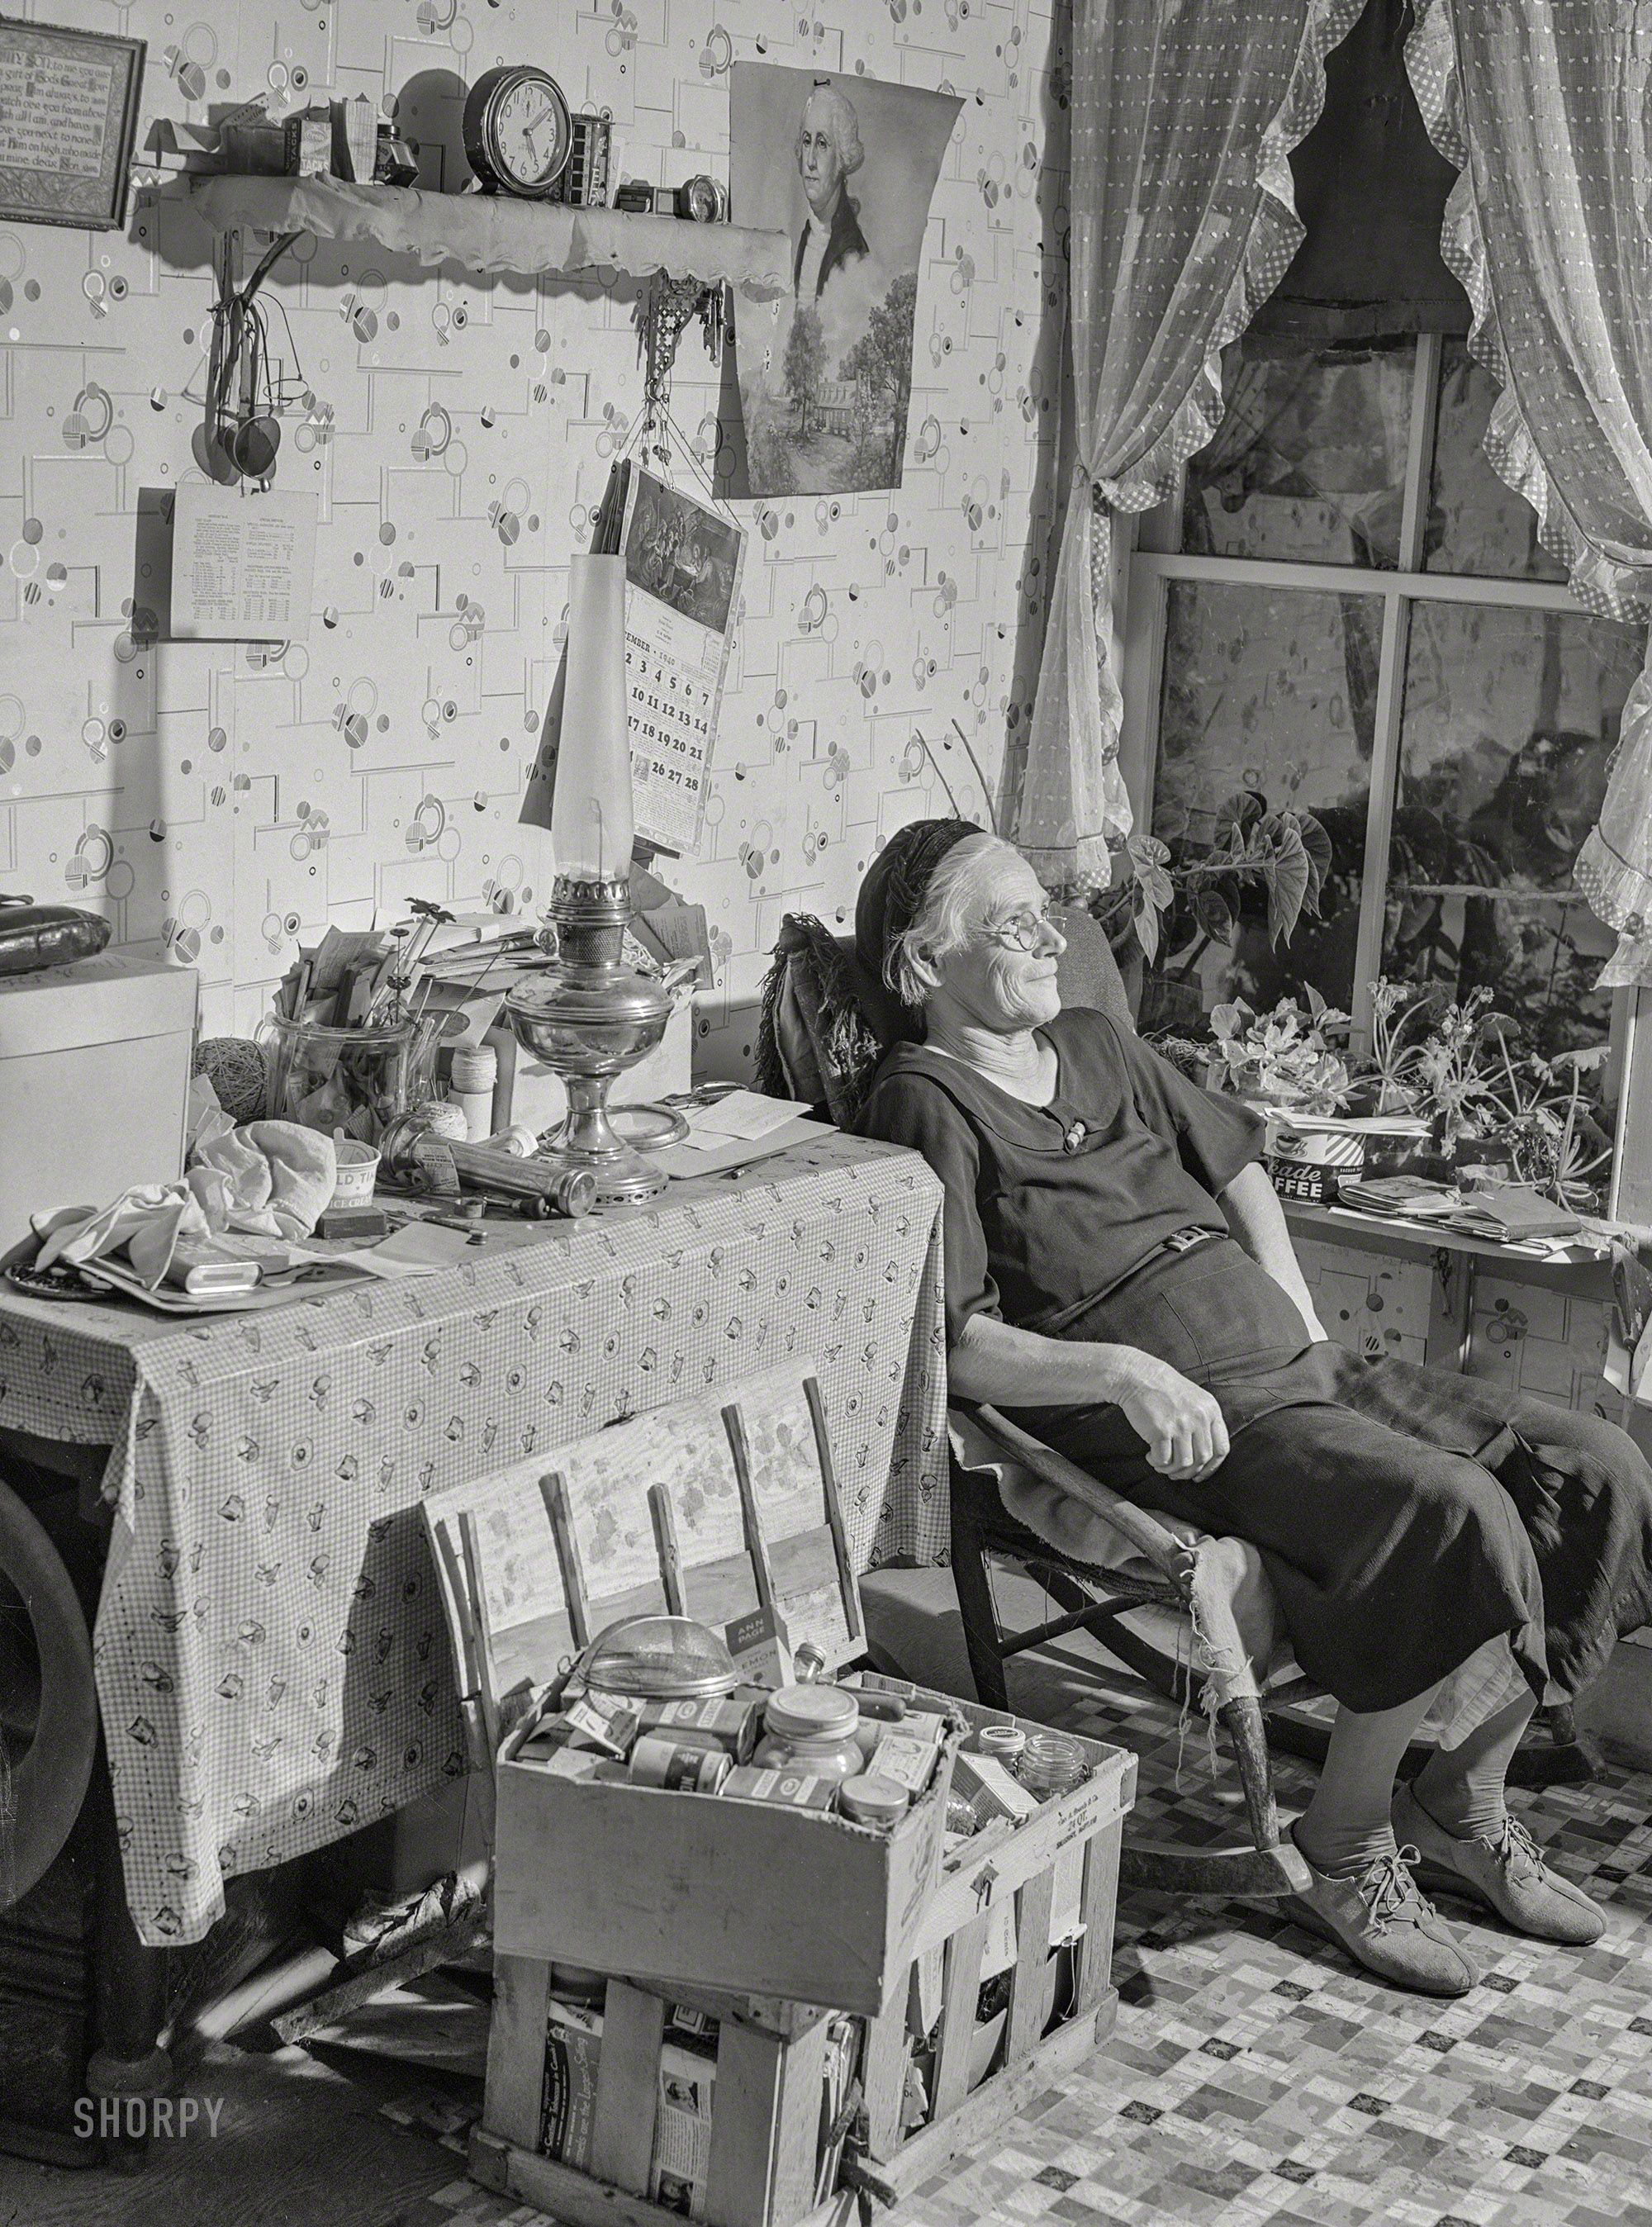 Shorpy Historical Photo Archive :: Summer 1938. New York